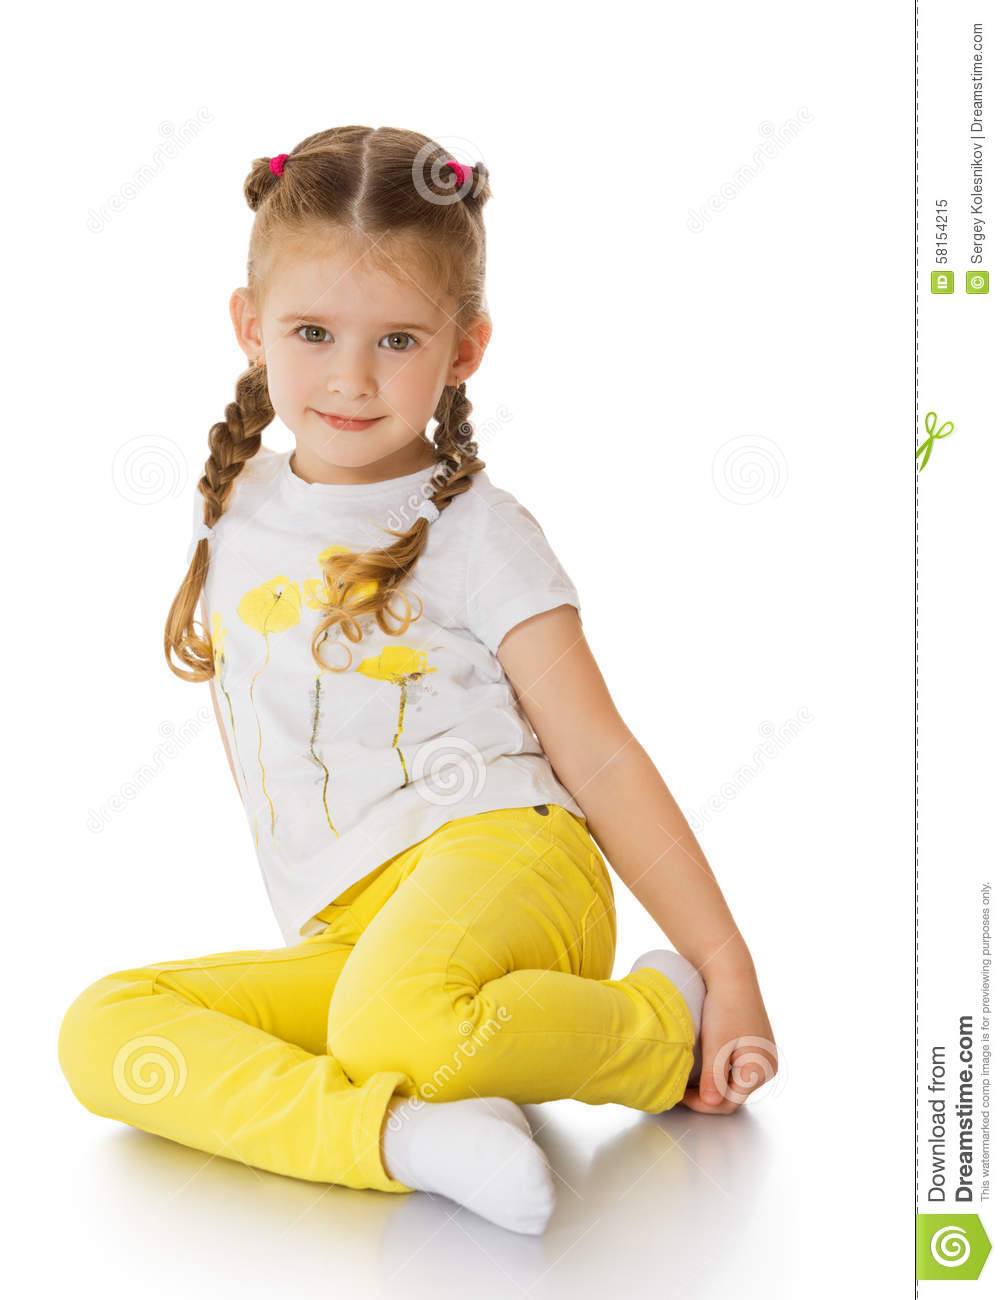 Pigtail Teen Yellow Shirt--9909